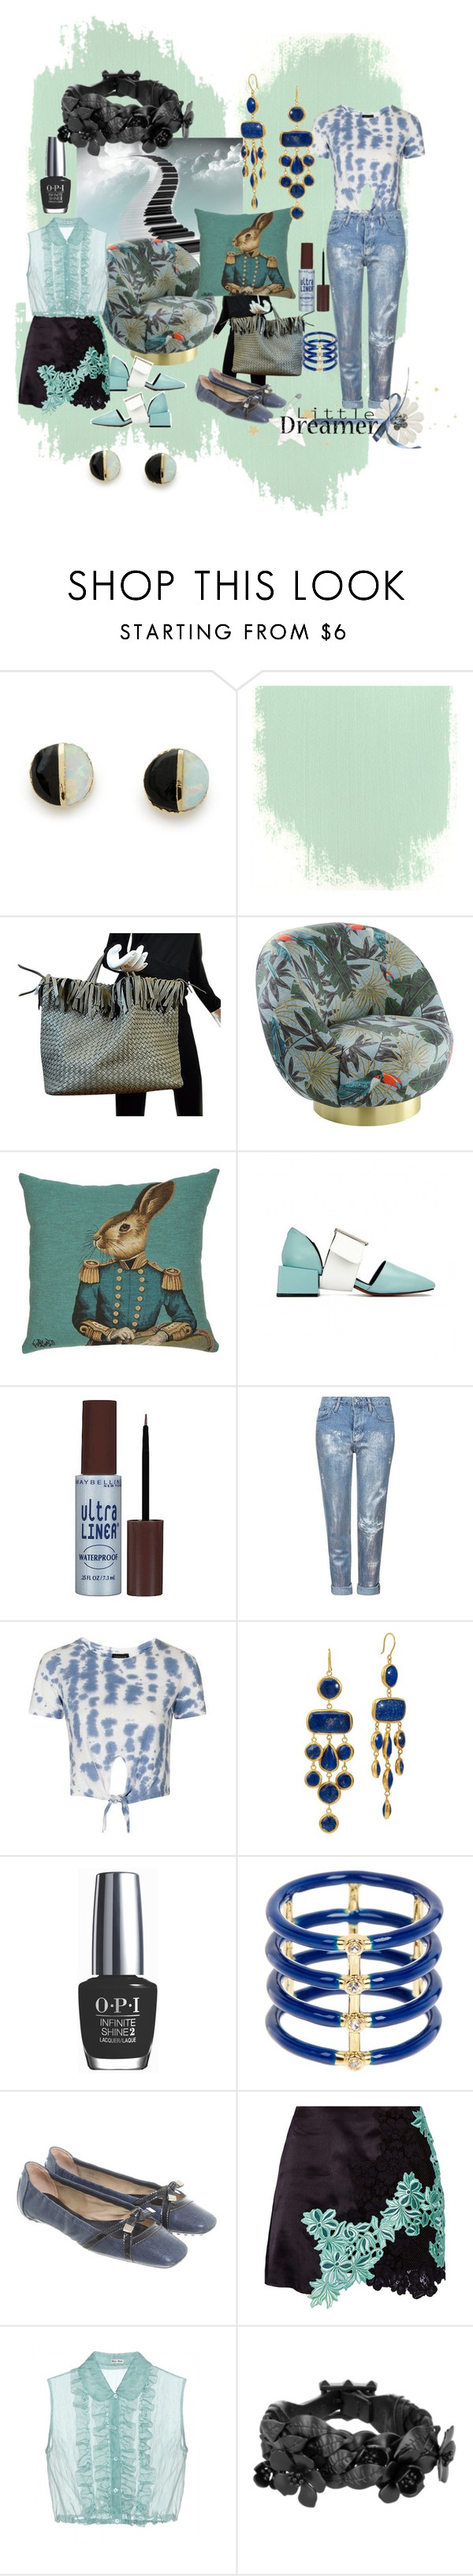 """Untitled #5041"" by pampire ❤ liked on Polyvore featuring Erica Weiner, Bottega Veneta, Maybelline, Topshop, OPI, Elizabeth and James, Tod's, 3.1 Phillip Lim, Miu Miu and Valentino"